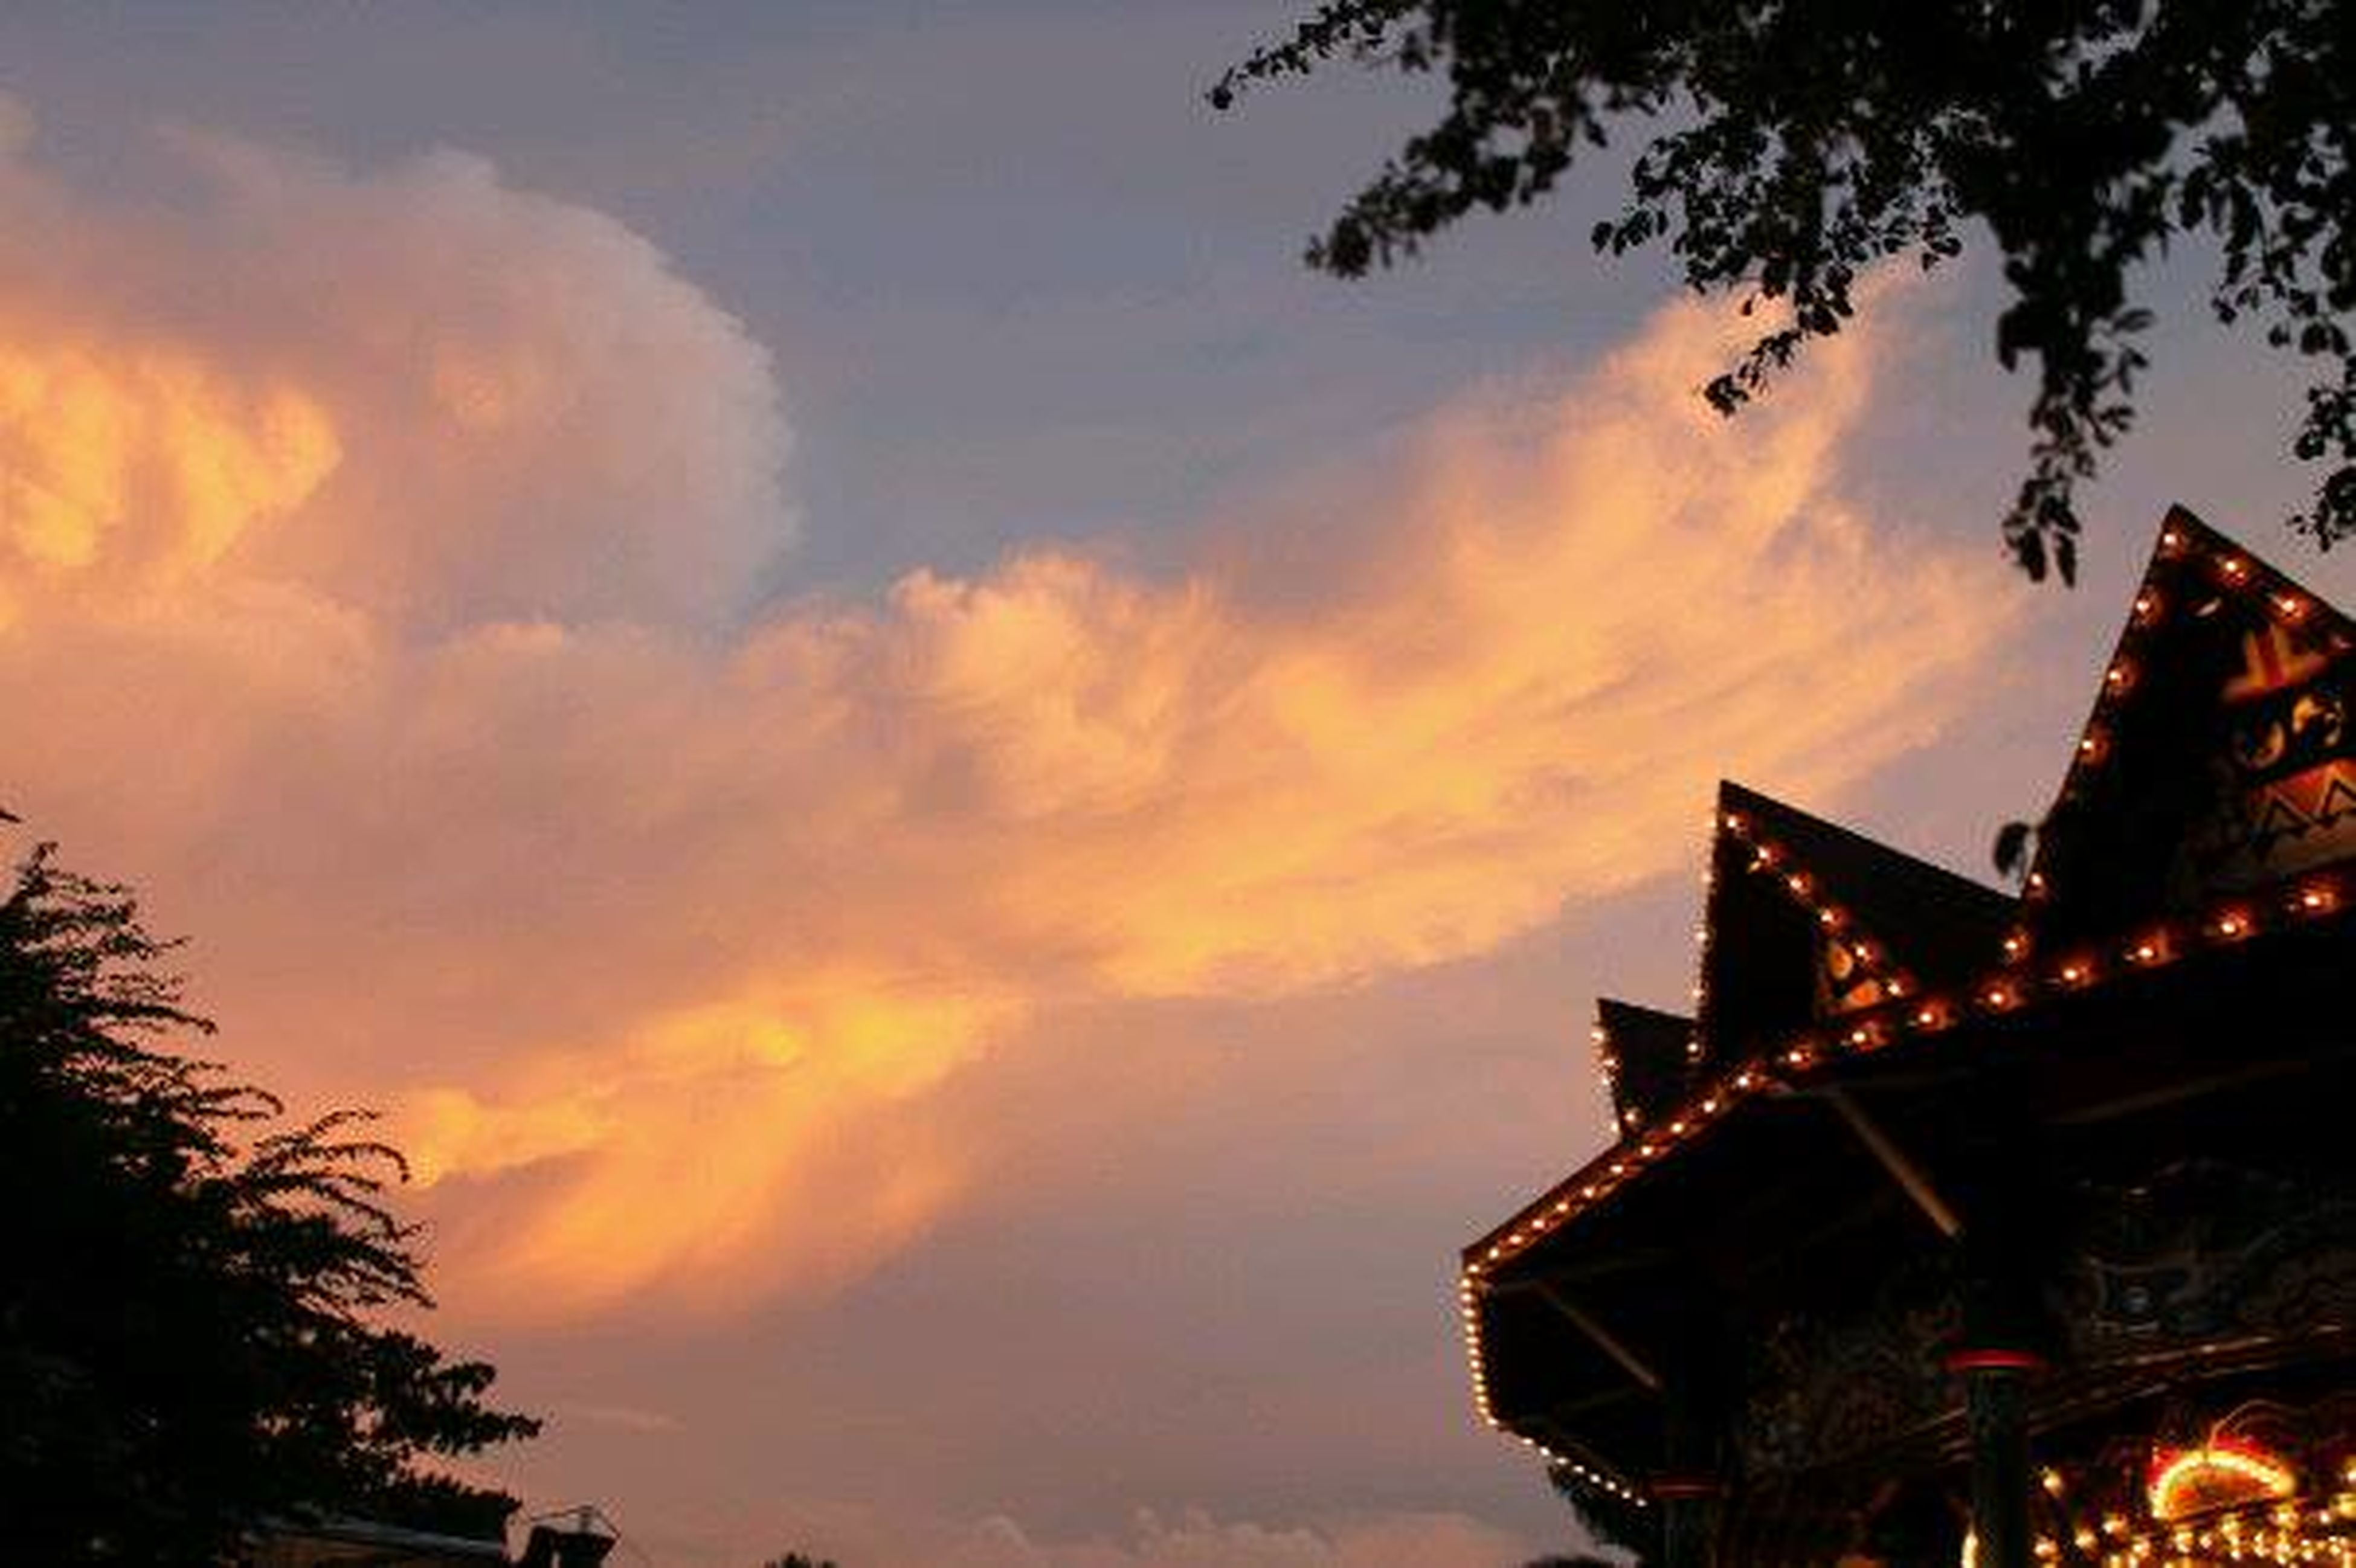 architecture, building exterior, built structure, sky, low angle view, sunset, cloud - sky, silhouette, tree, dusk, cloudy, religion, place of worship, cloud, high section, outdoors, spirituality, orange color, building, no people